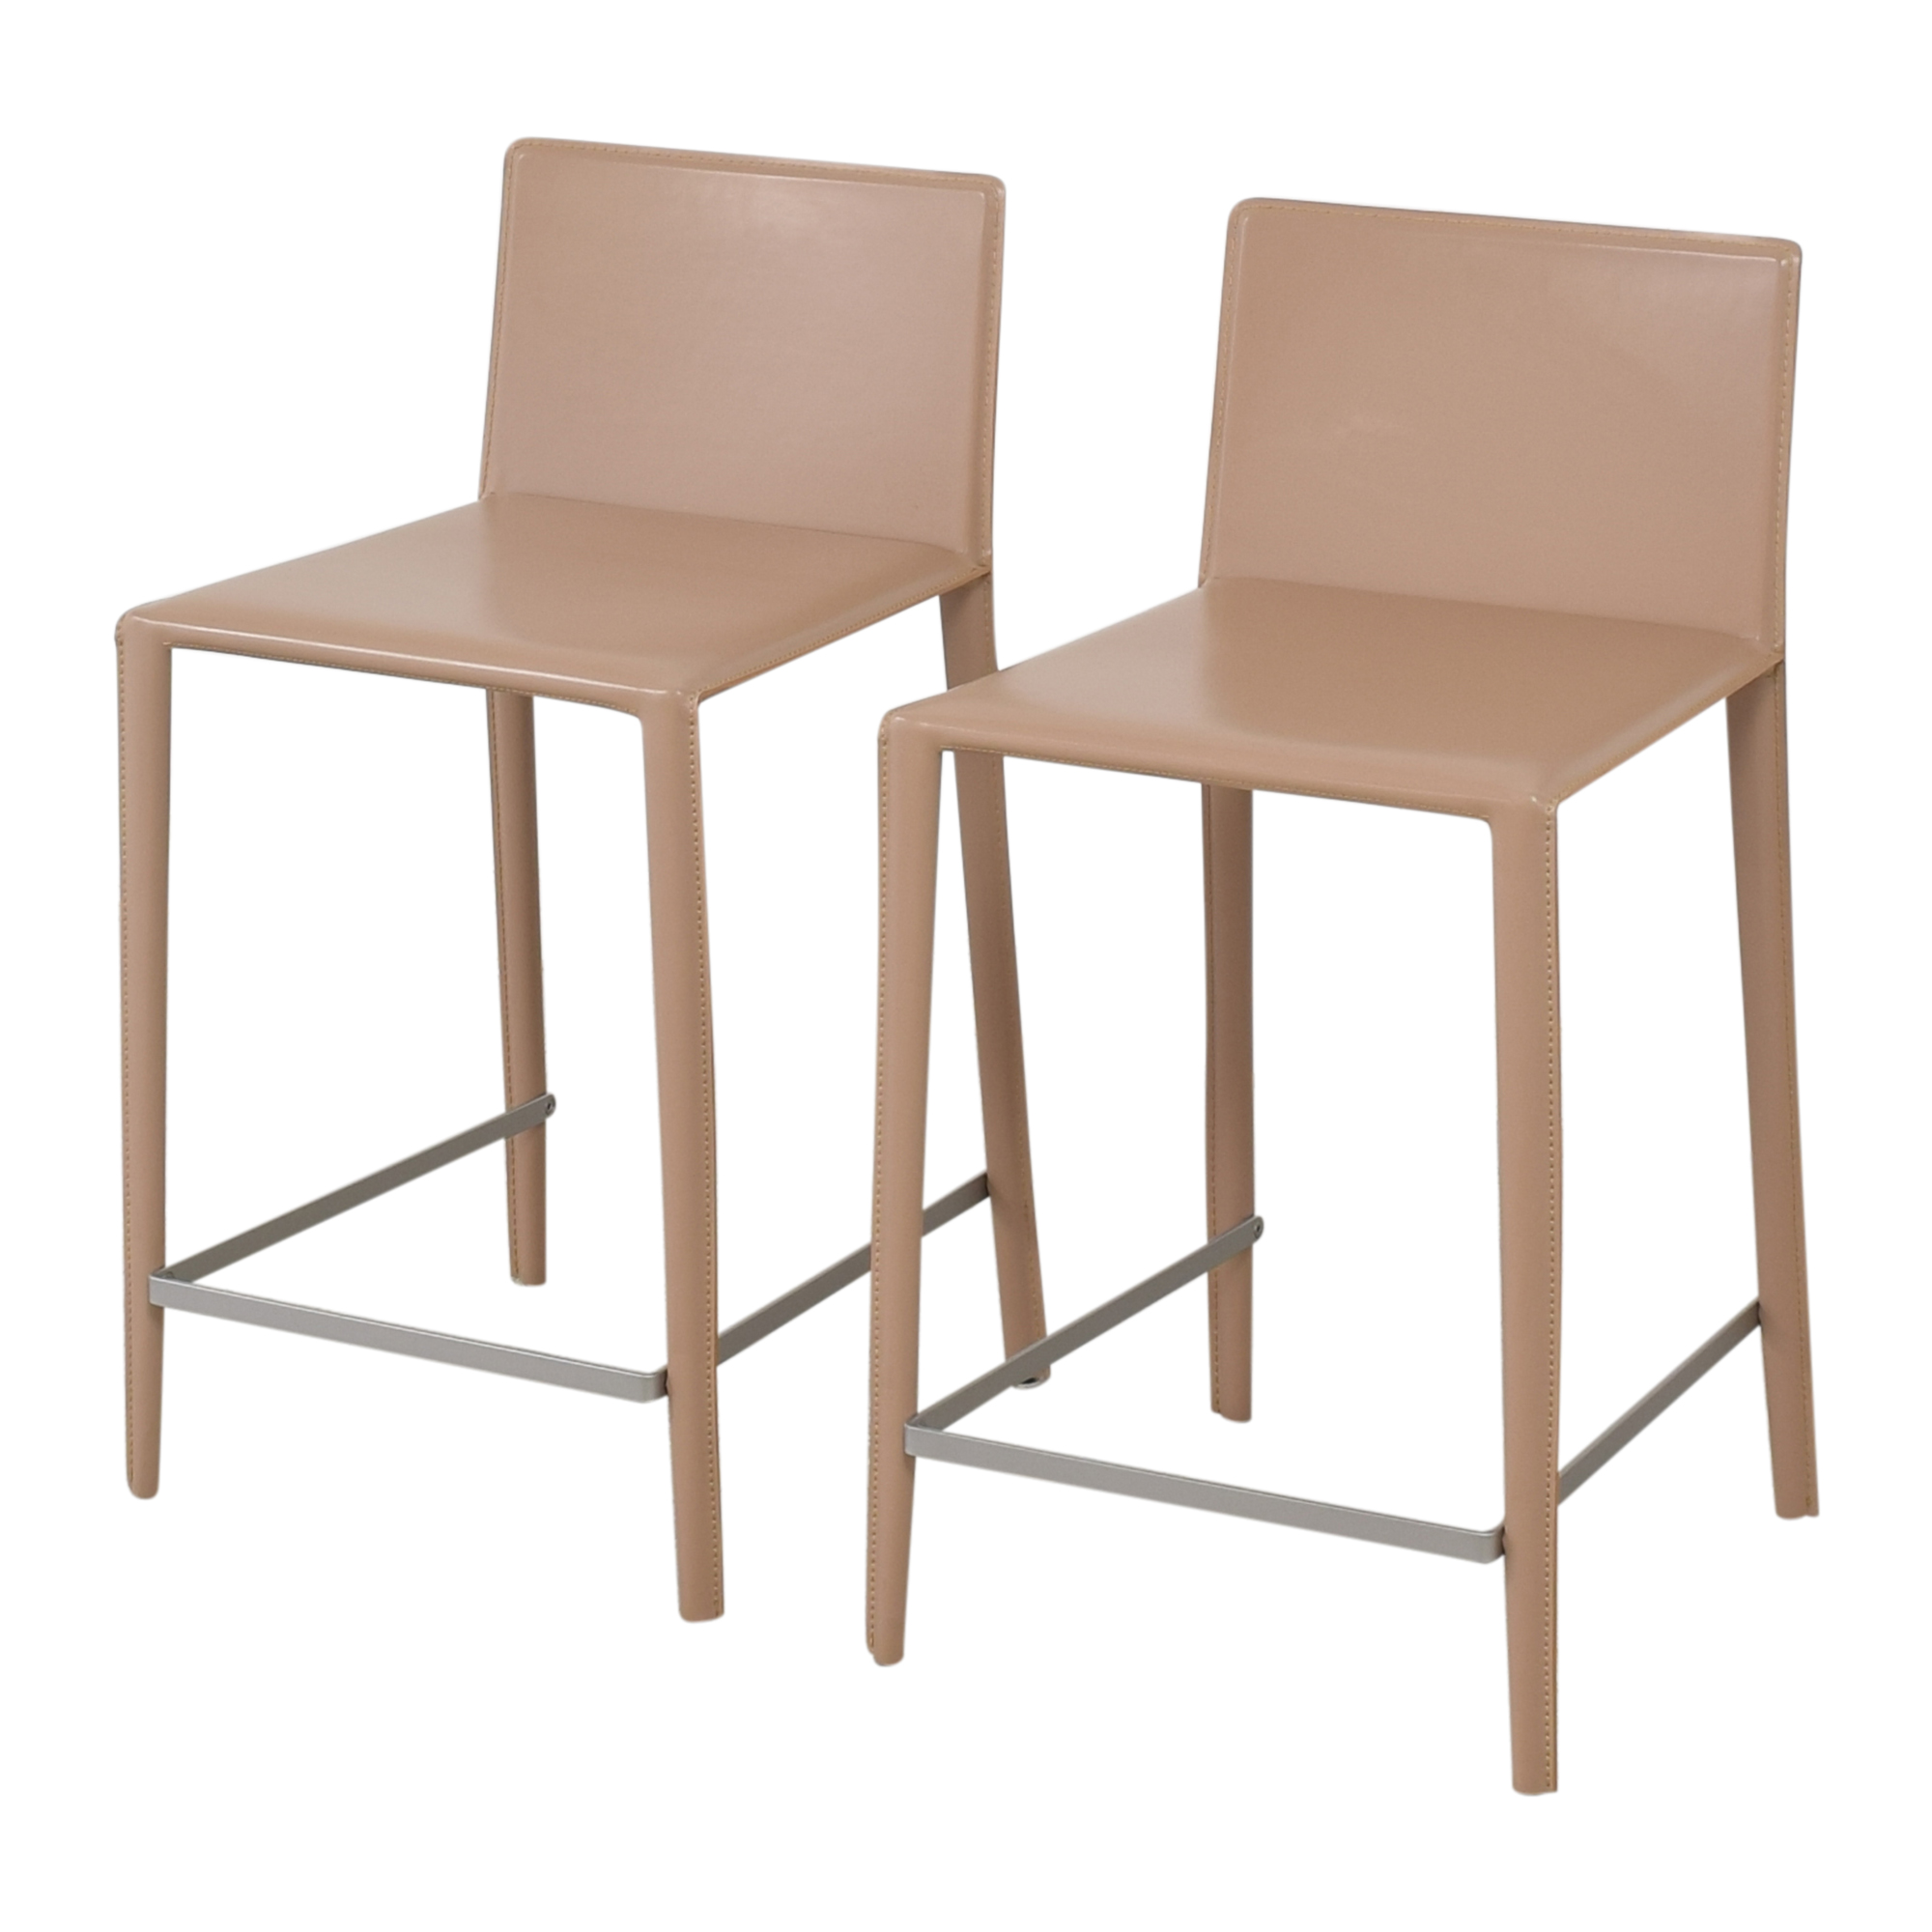 buy Arper Norma Counter Stools Arper Chairs